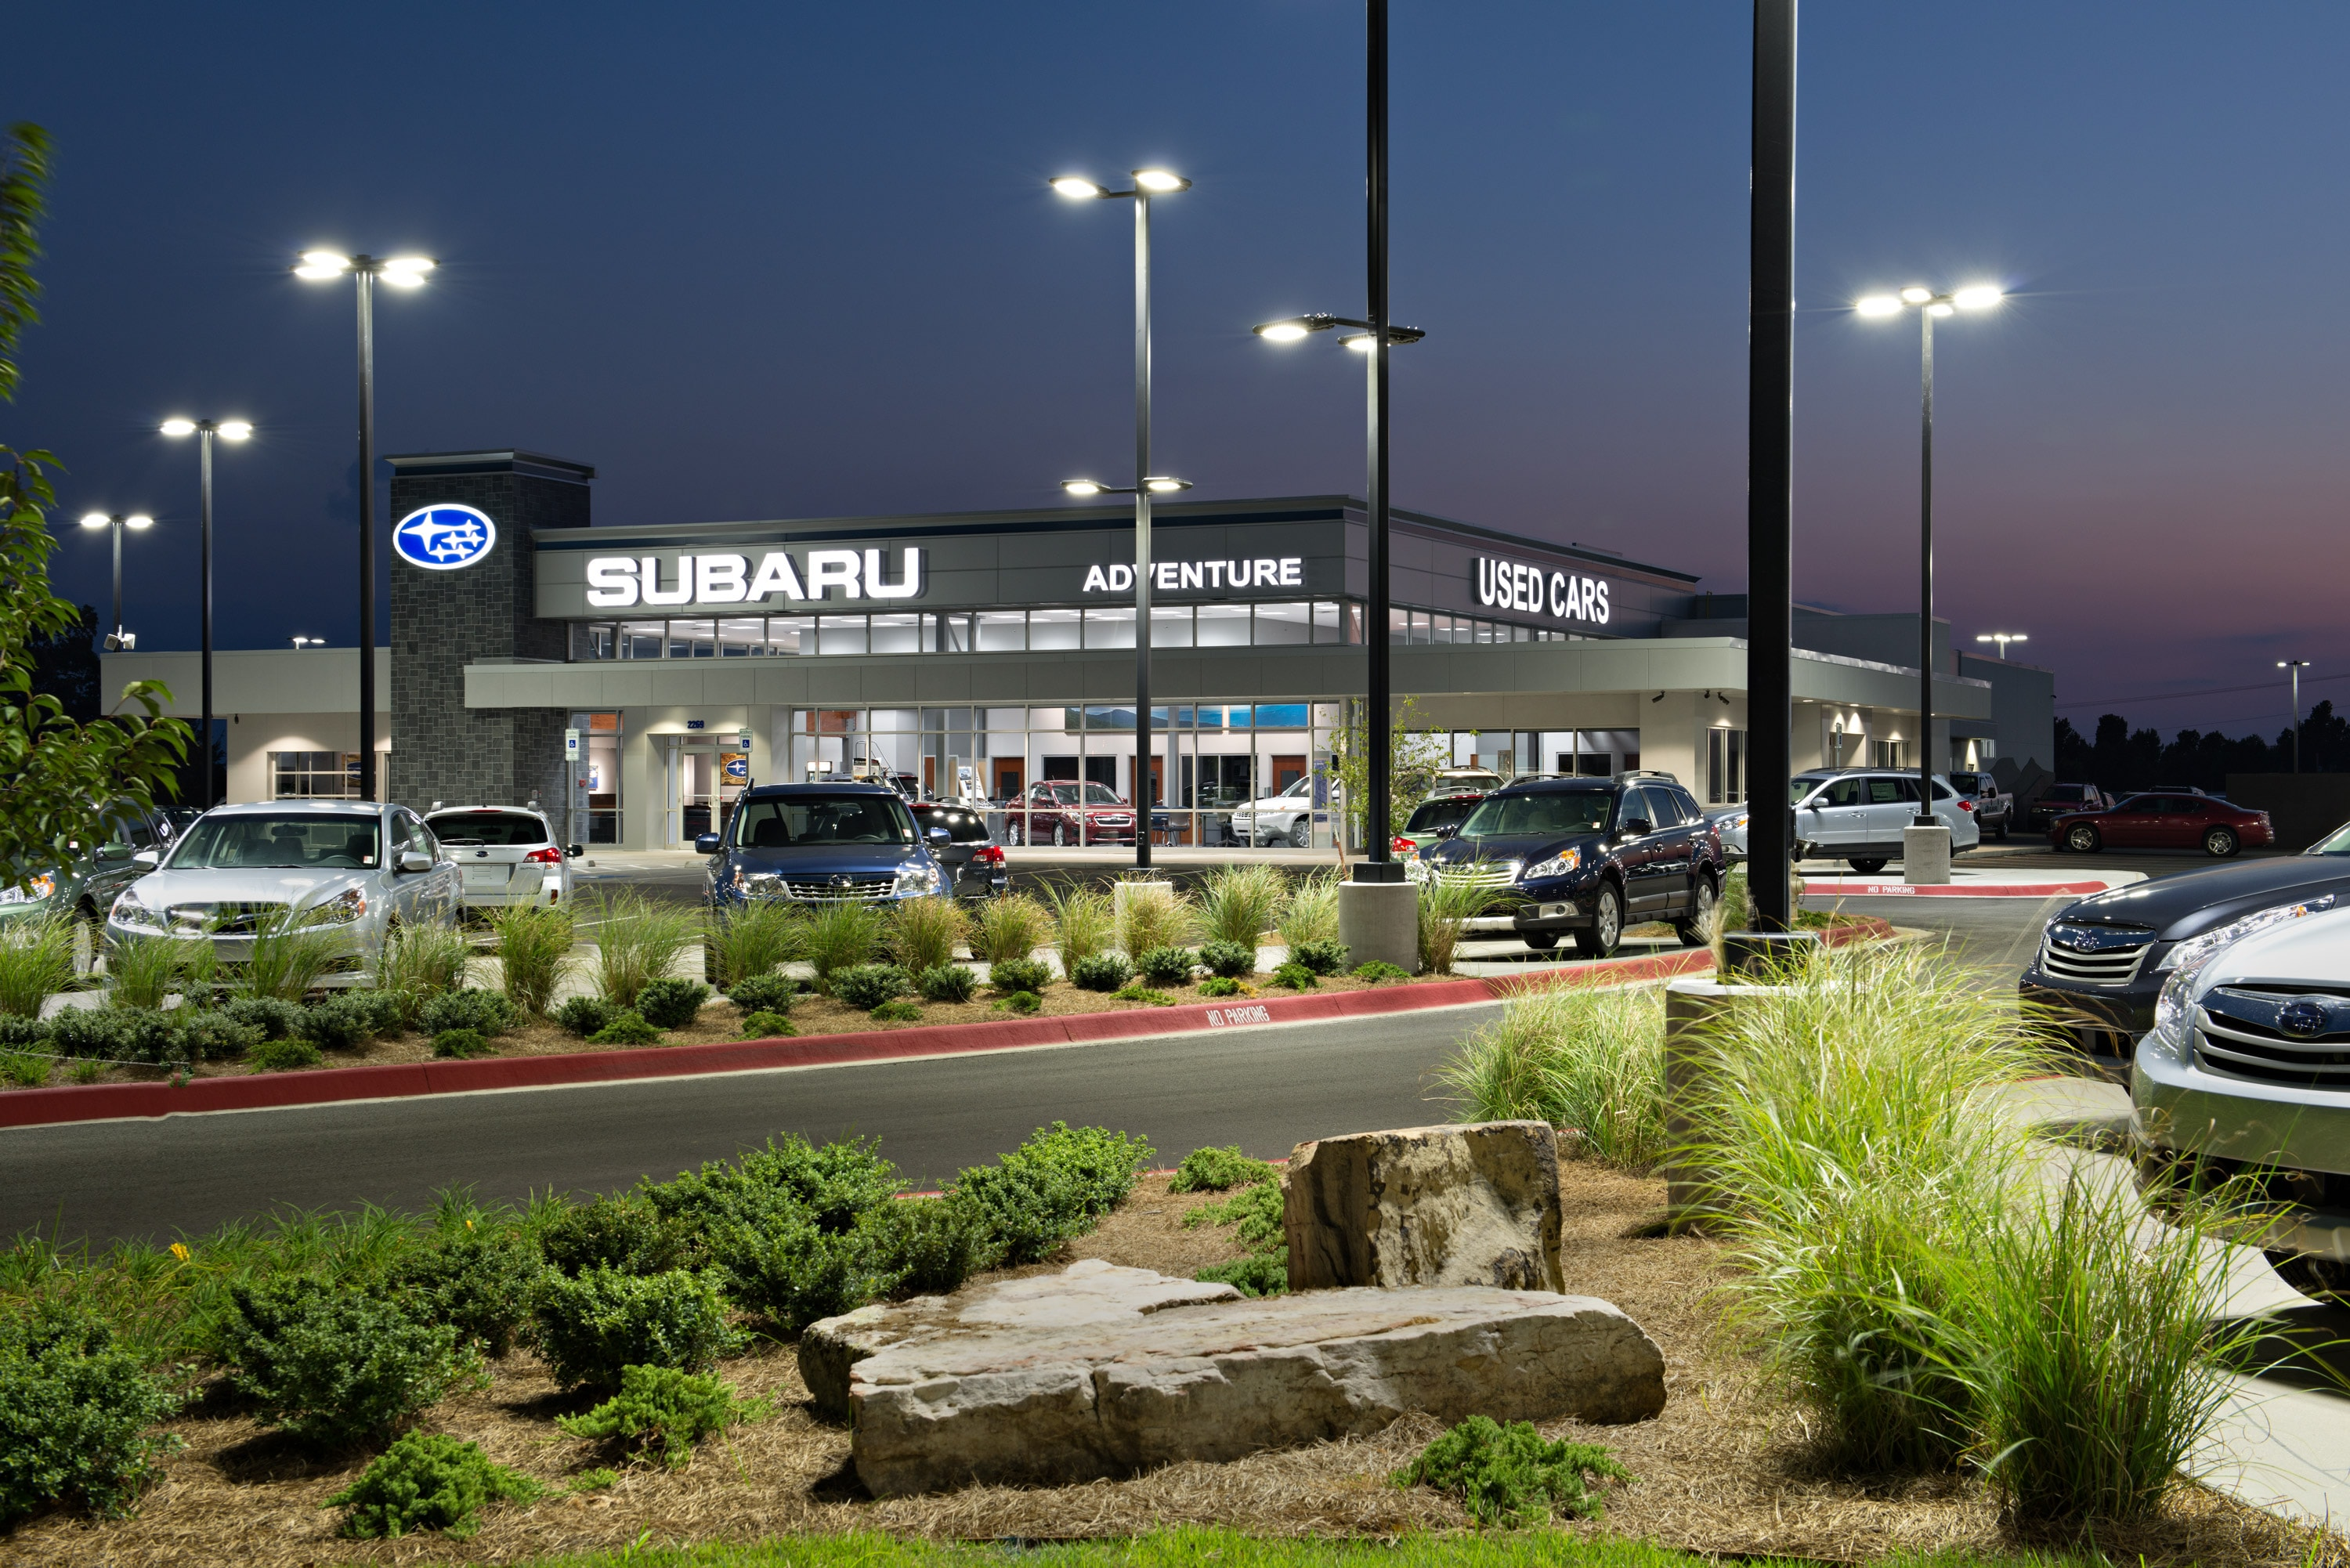 adventure subaru new subaru dealership in fayetteville. Black Bedroom Furniture Sets. Home Design Ideas